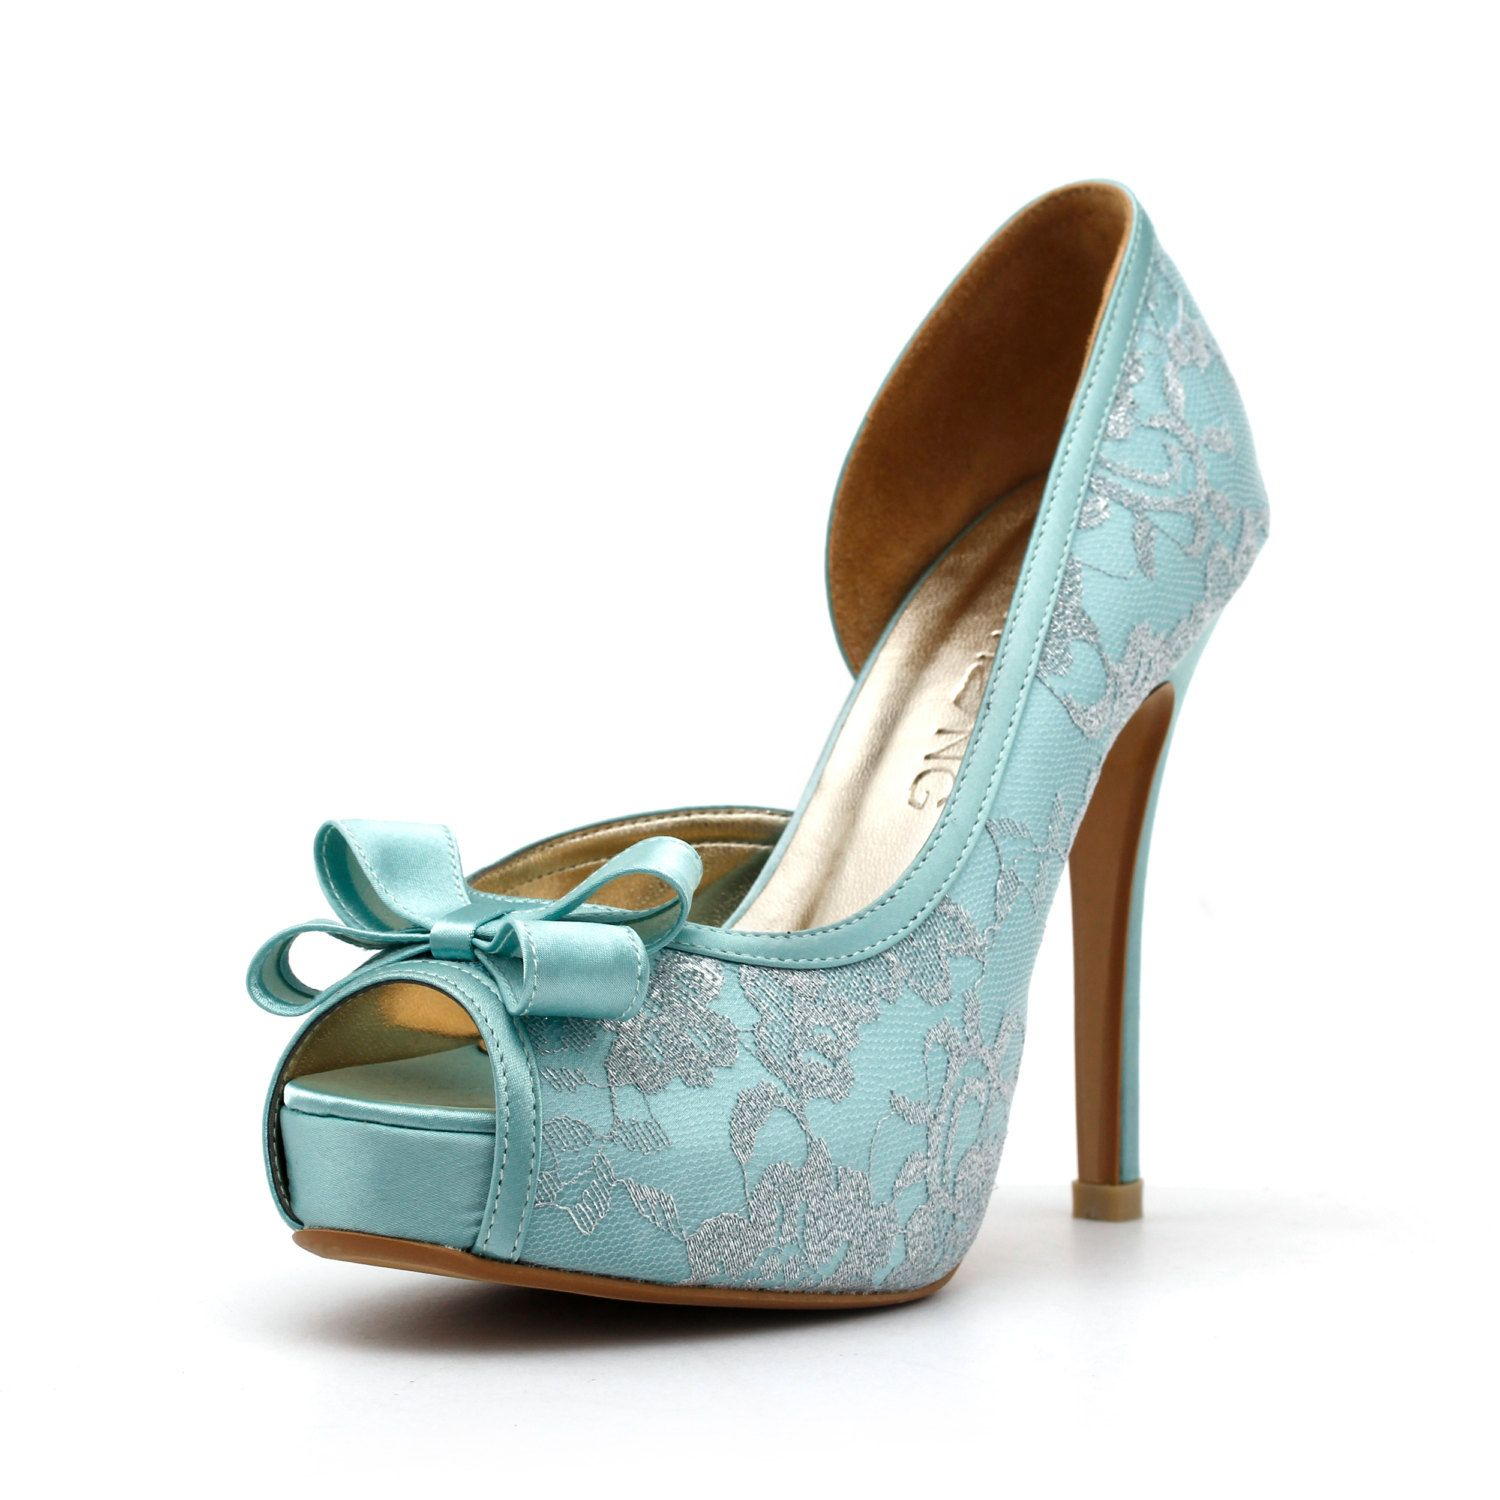 17 Best images about Bridal shoes.... on Pinterest | Something ...